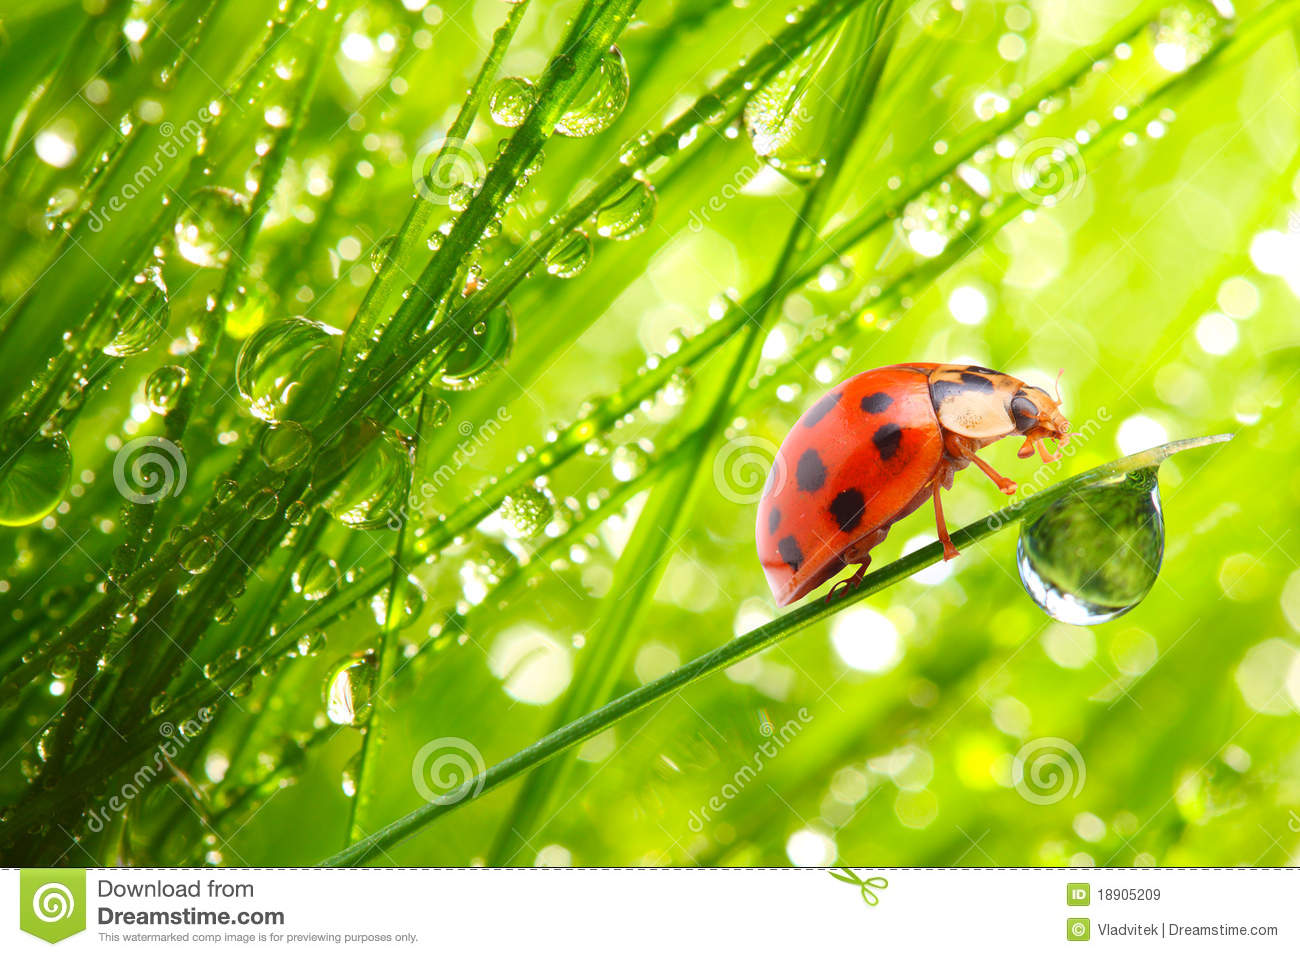 Download The Ladybug On A Dewy Grass. Stock Image - Image of background, animal: 18905209